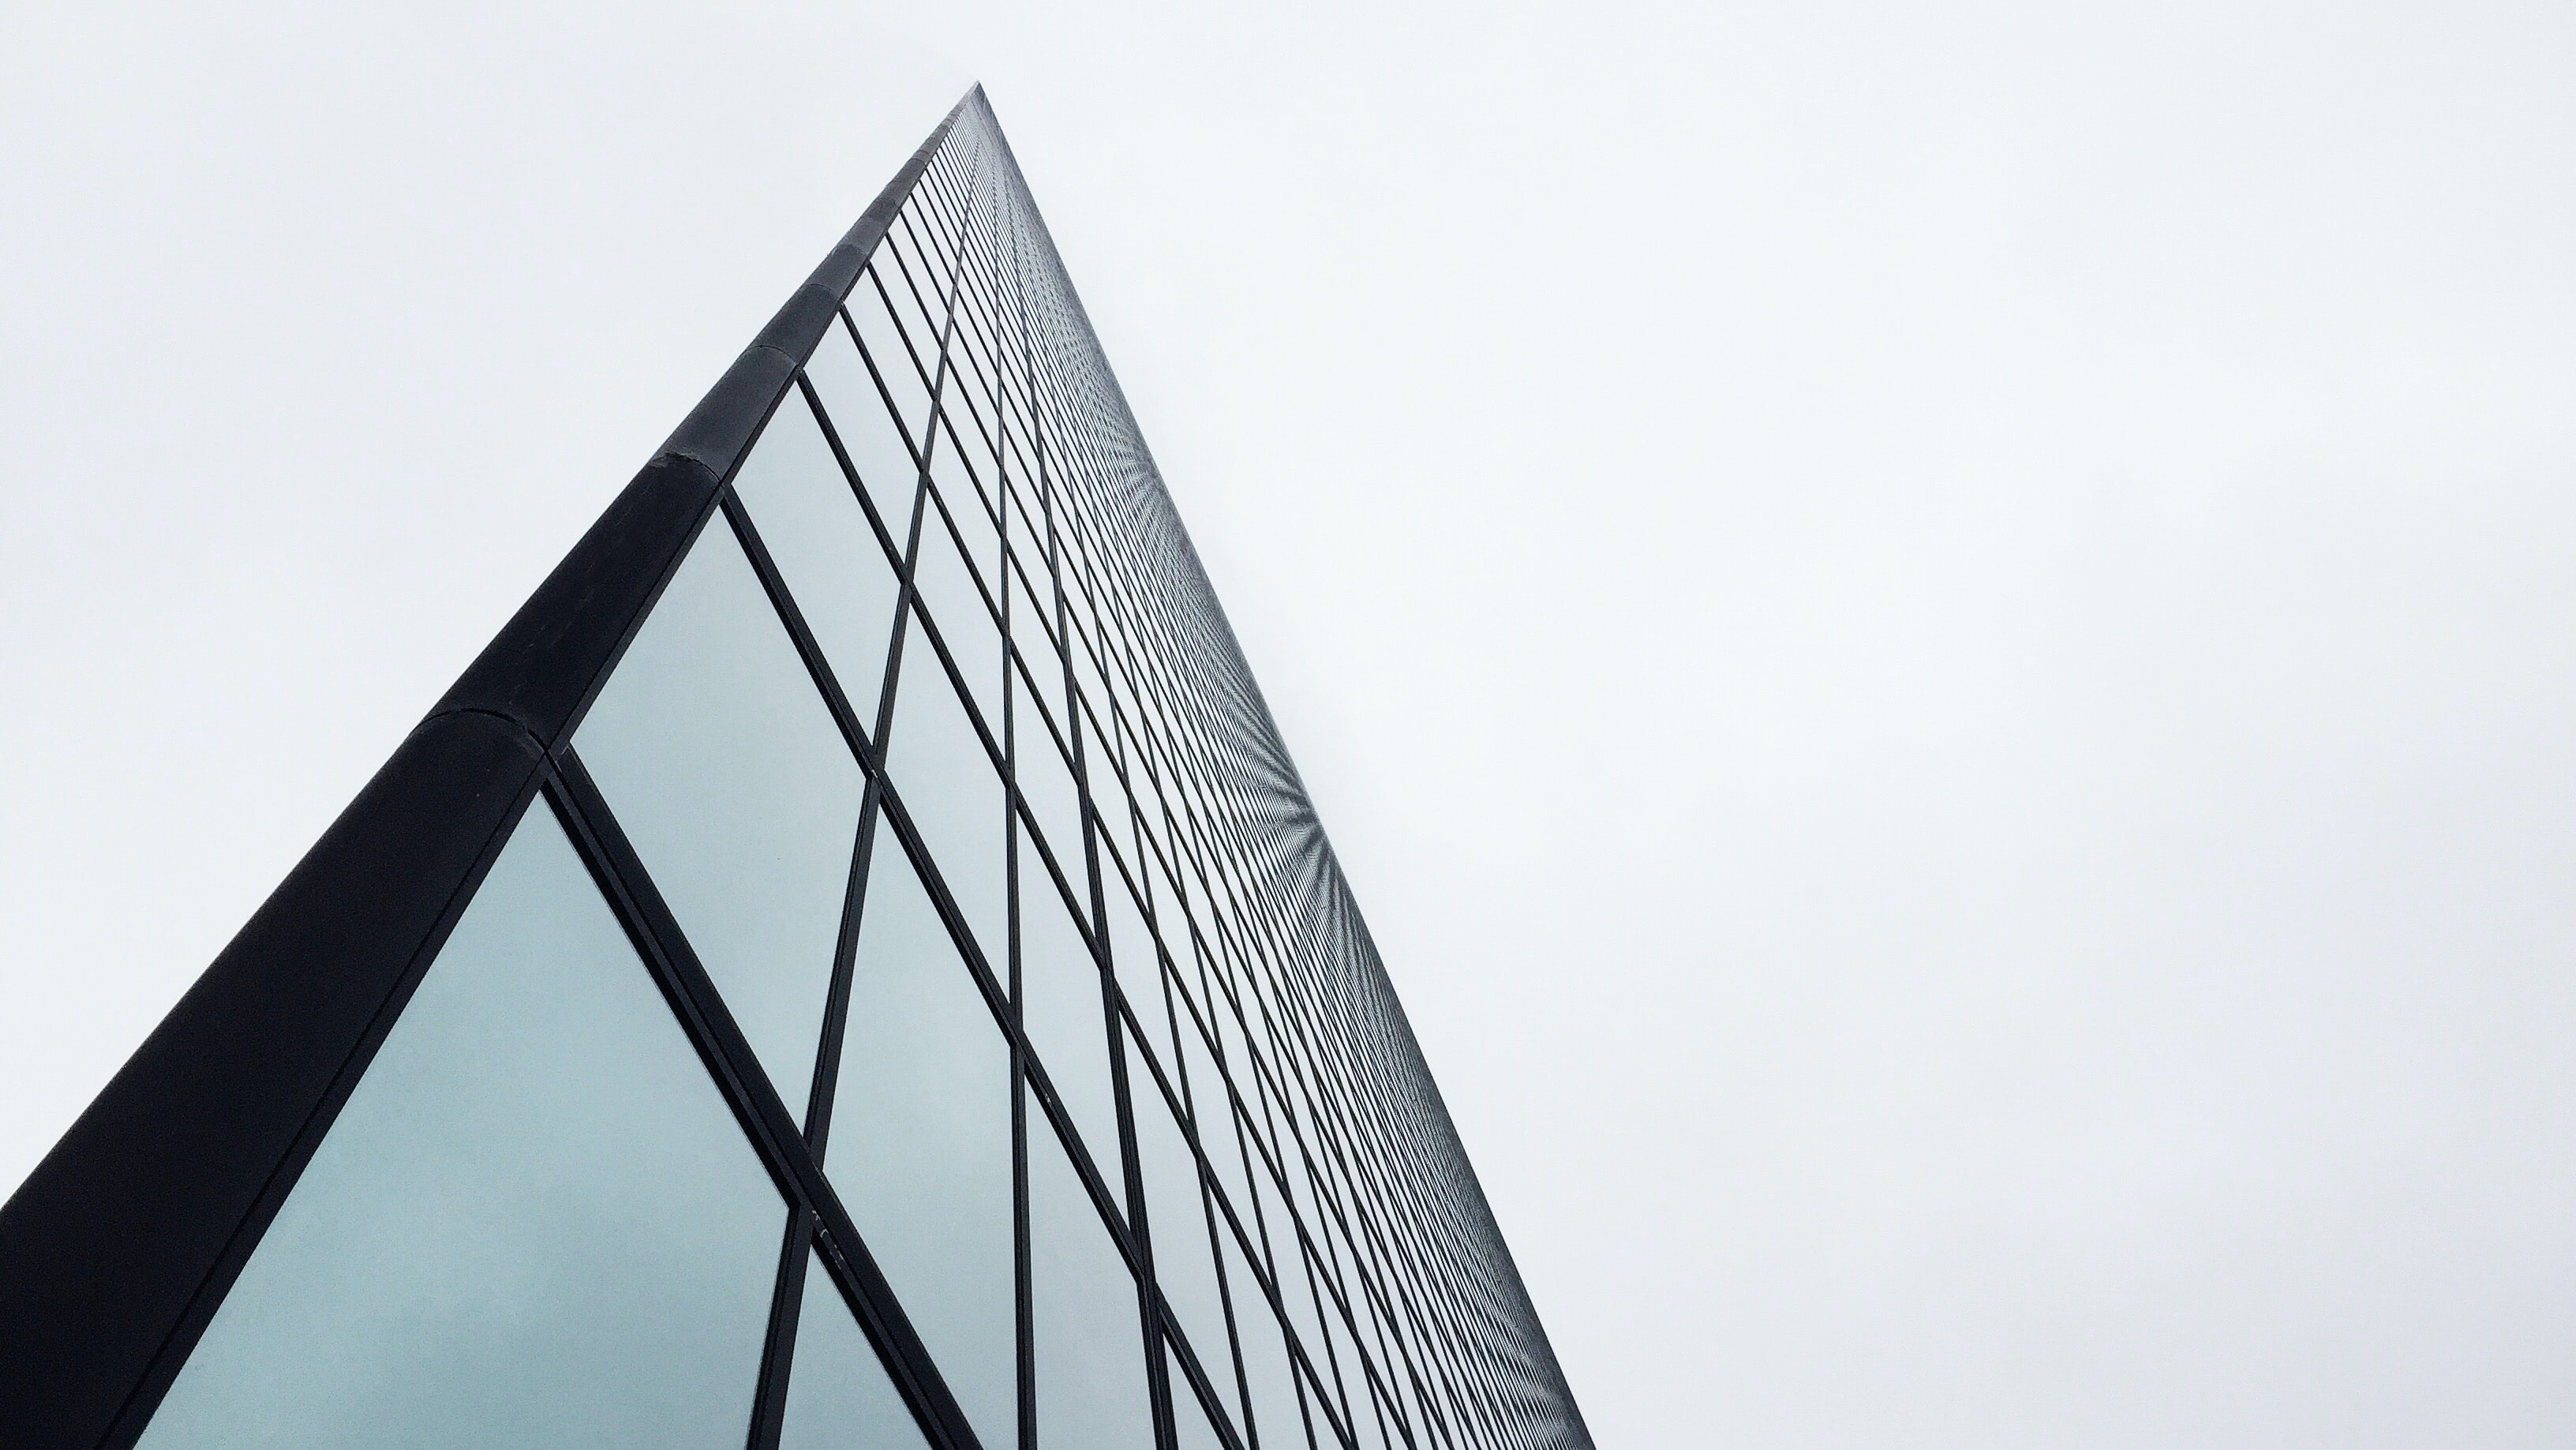 An angular shot of a tall glass facade in Boston